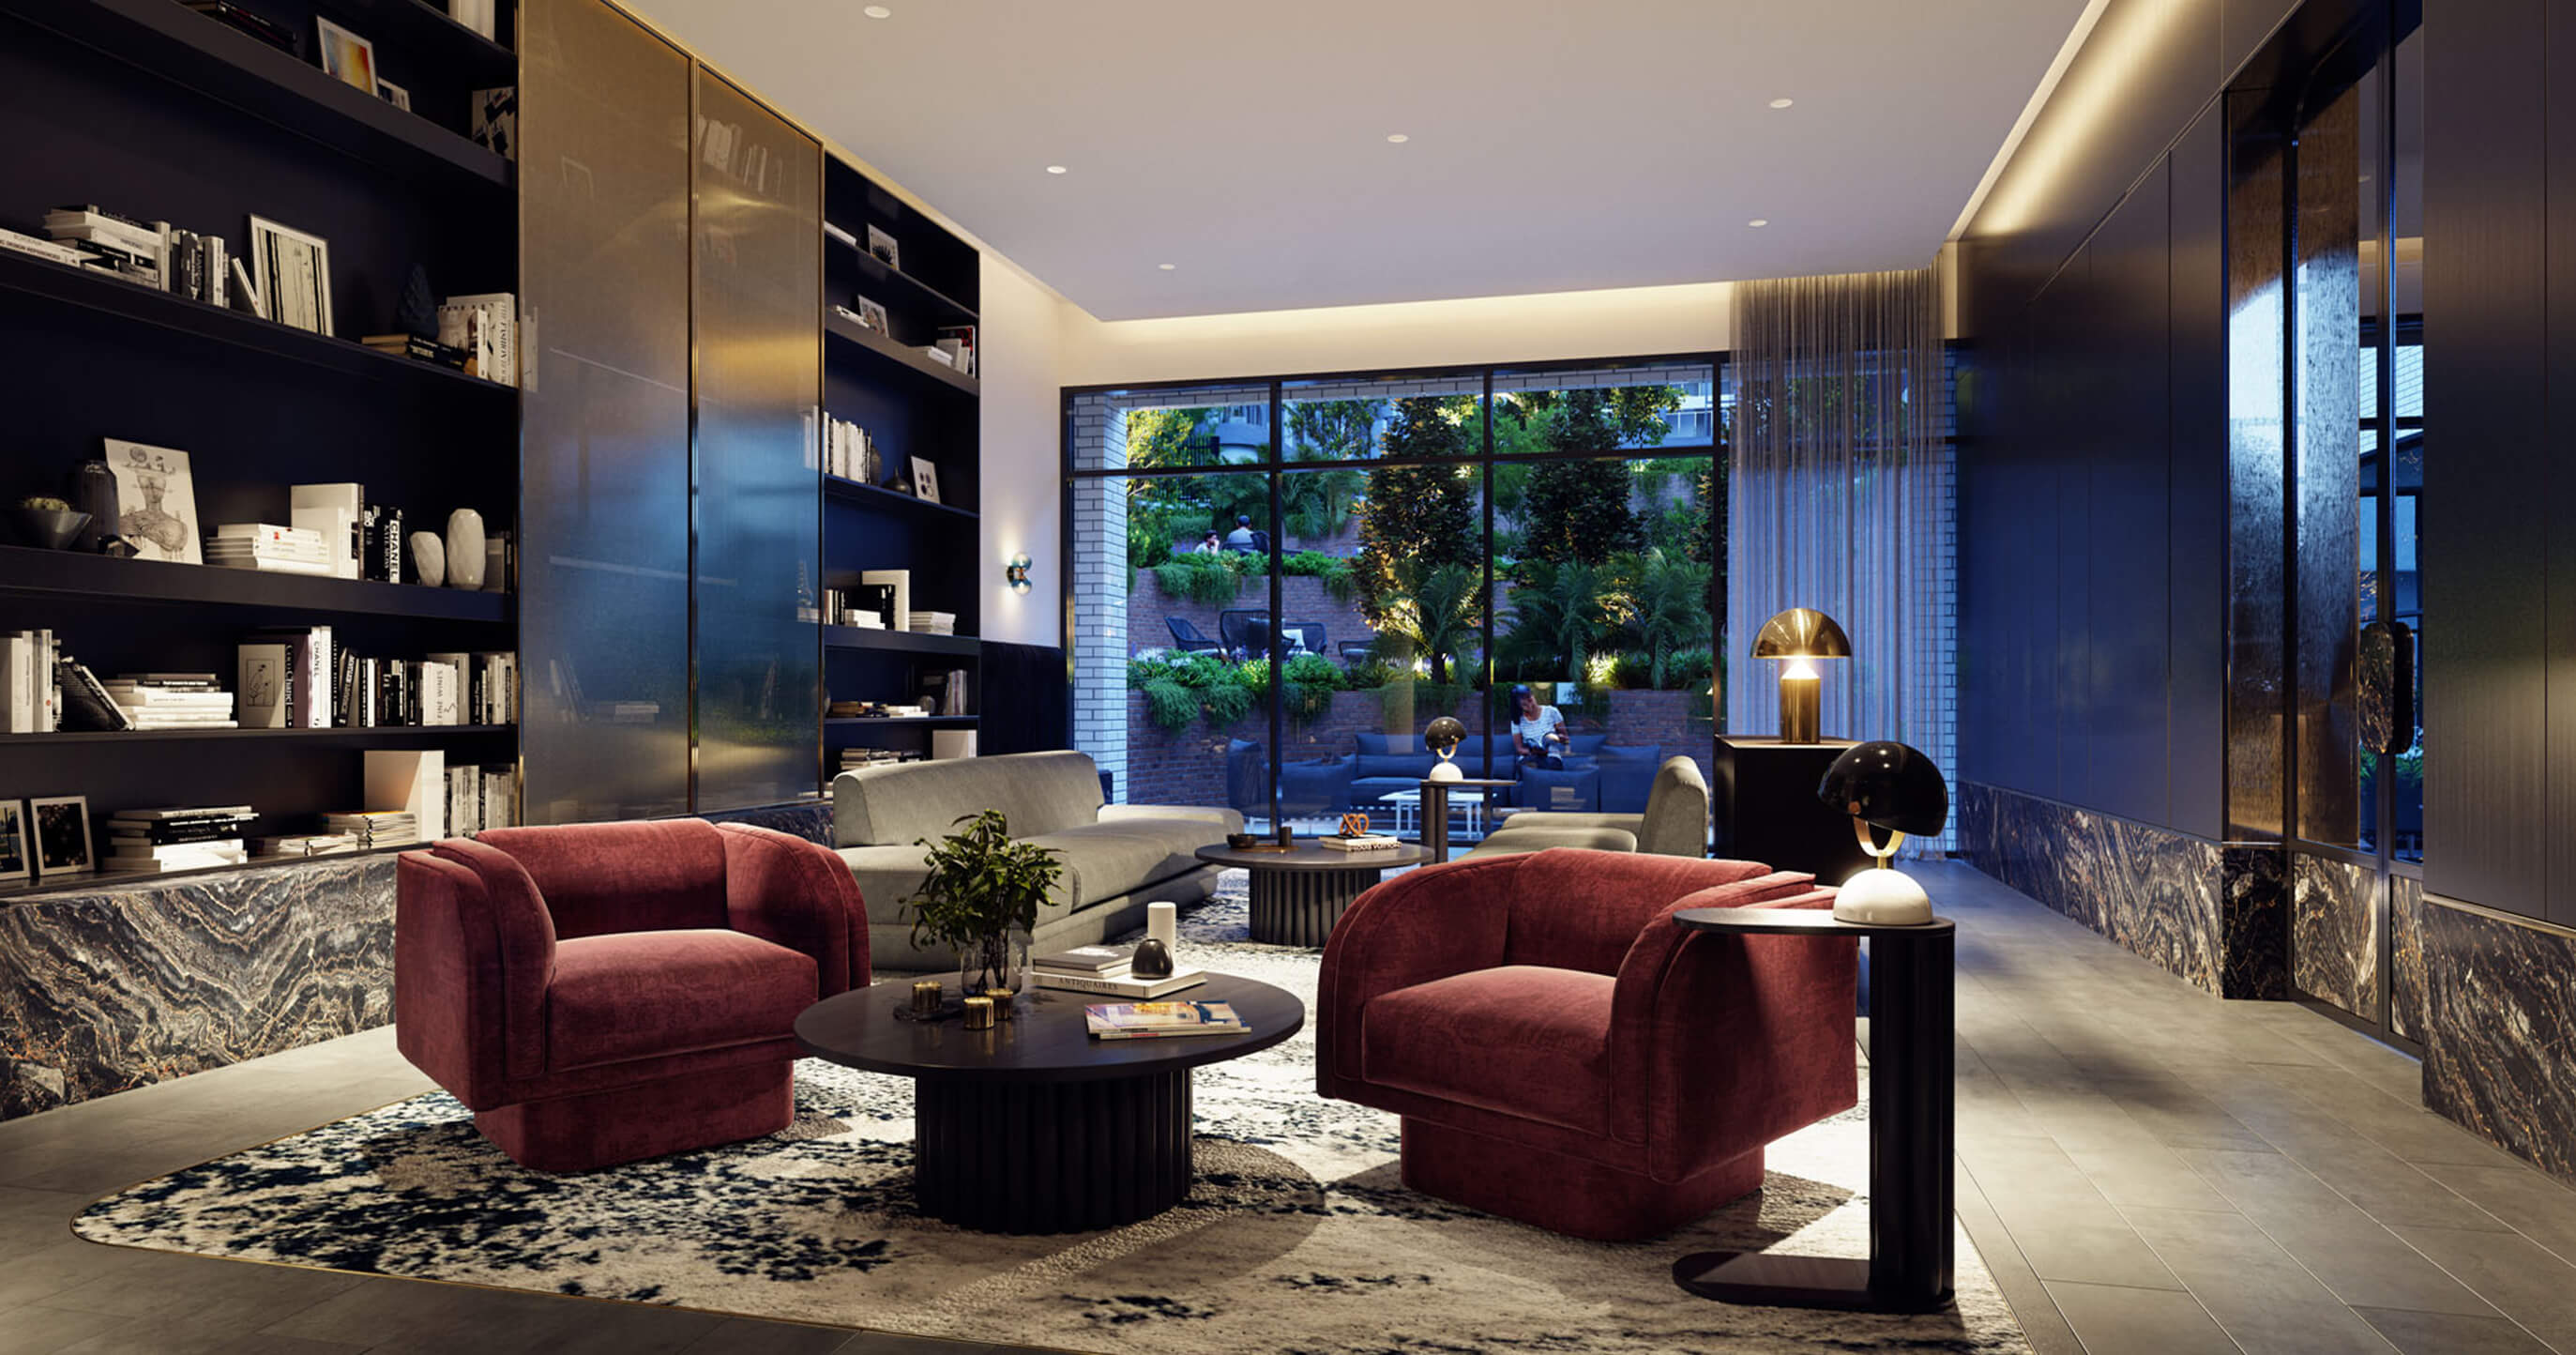 Residents' private club lounge